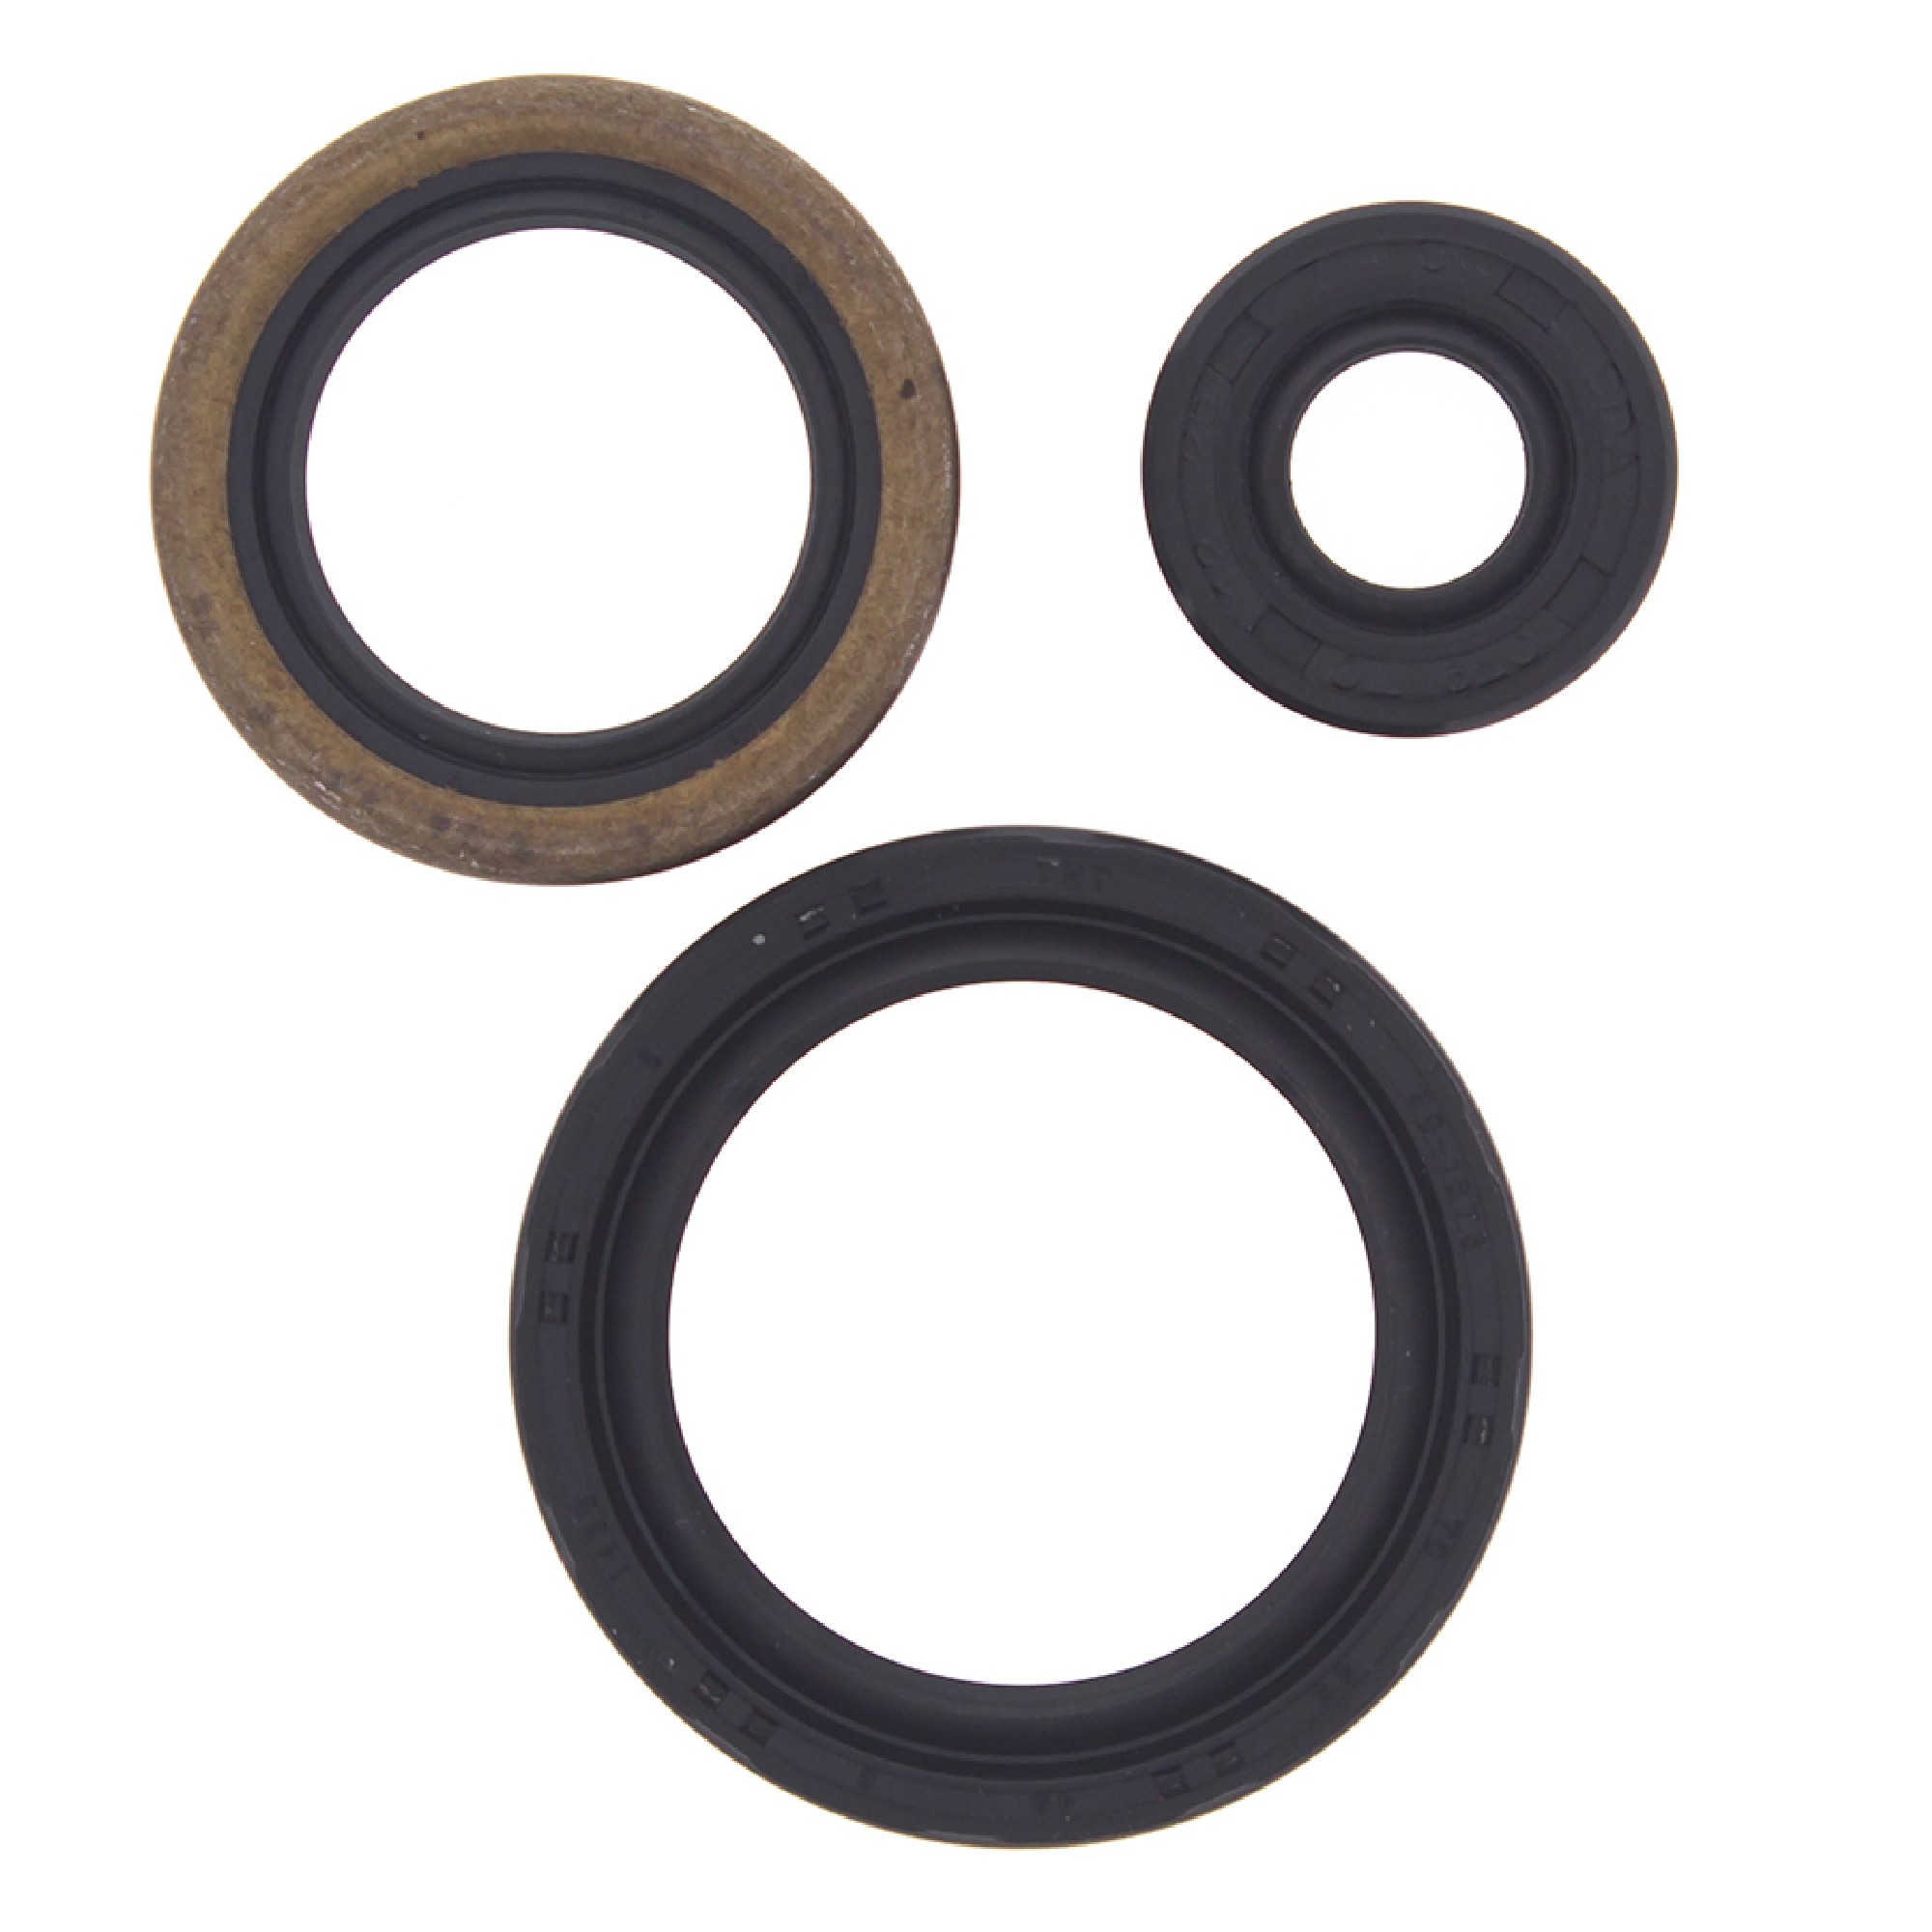 details about winderosa engine oil seal kit for polaris trail boss 330 2003  - 2013 330cc